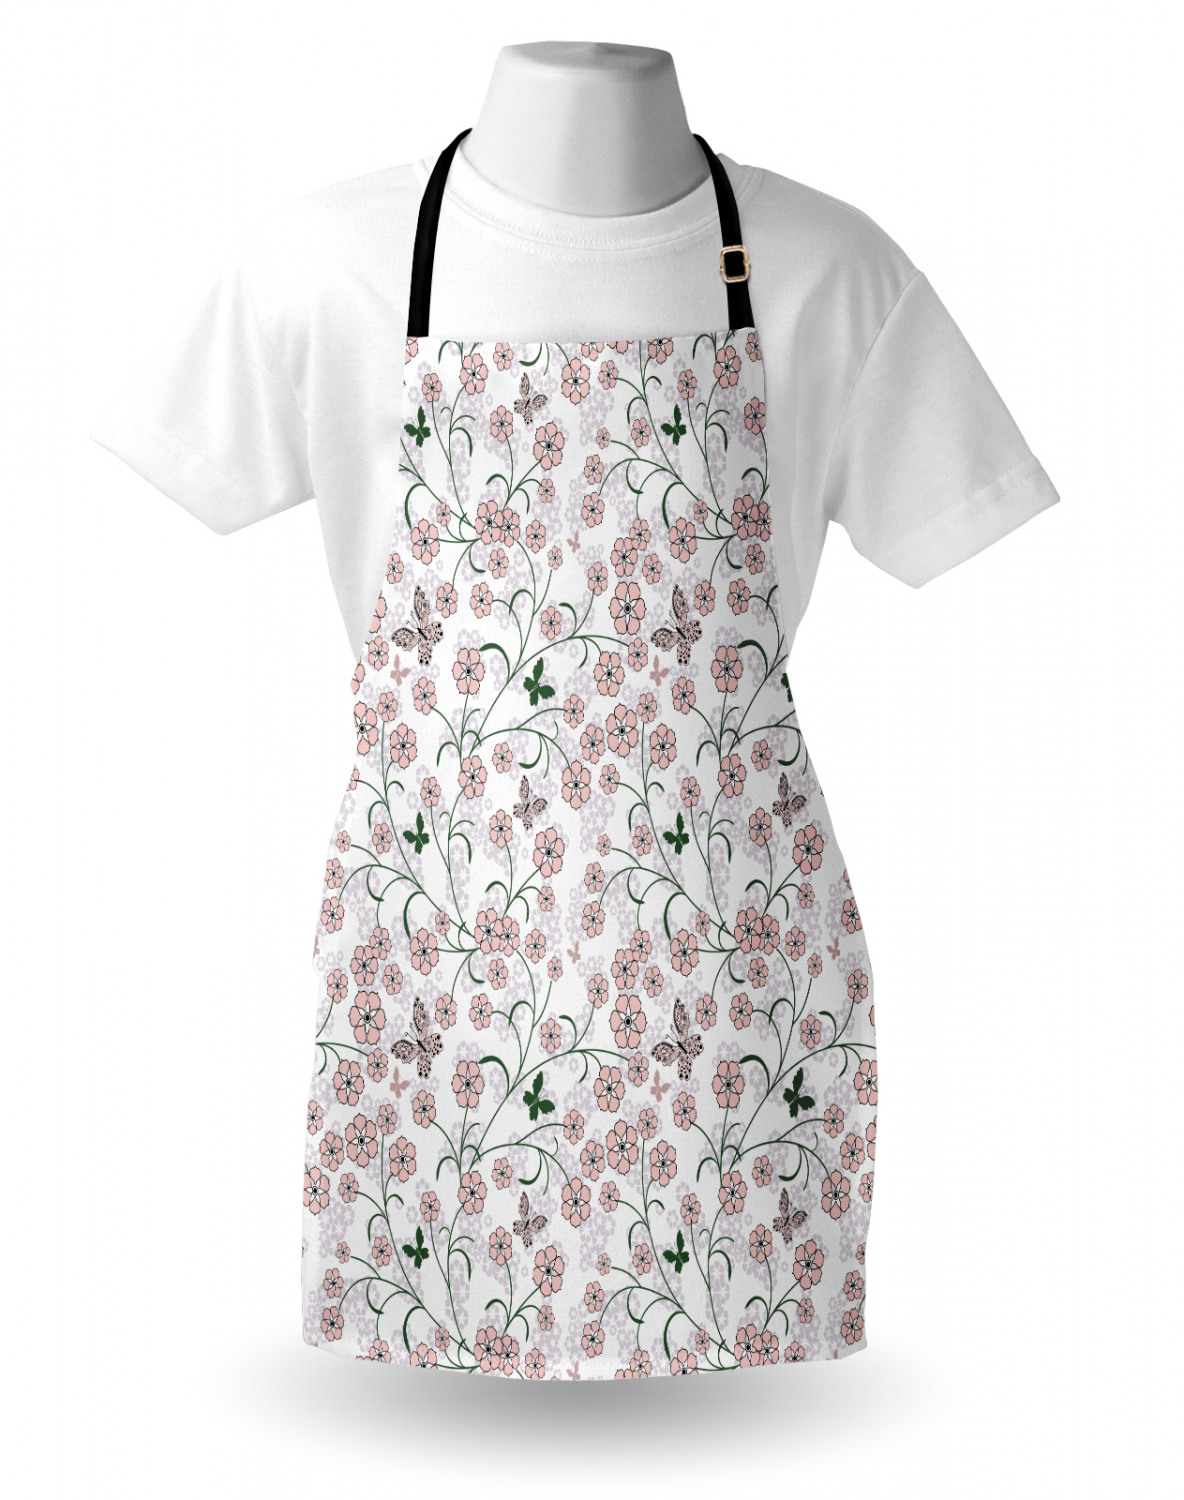 Ambesonne-Outdoor-Use-Apron-with-Adjustable-Neck-Strap-for-Gardening-and-Cooking miniatura 69